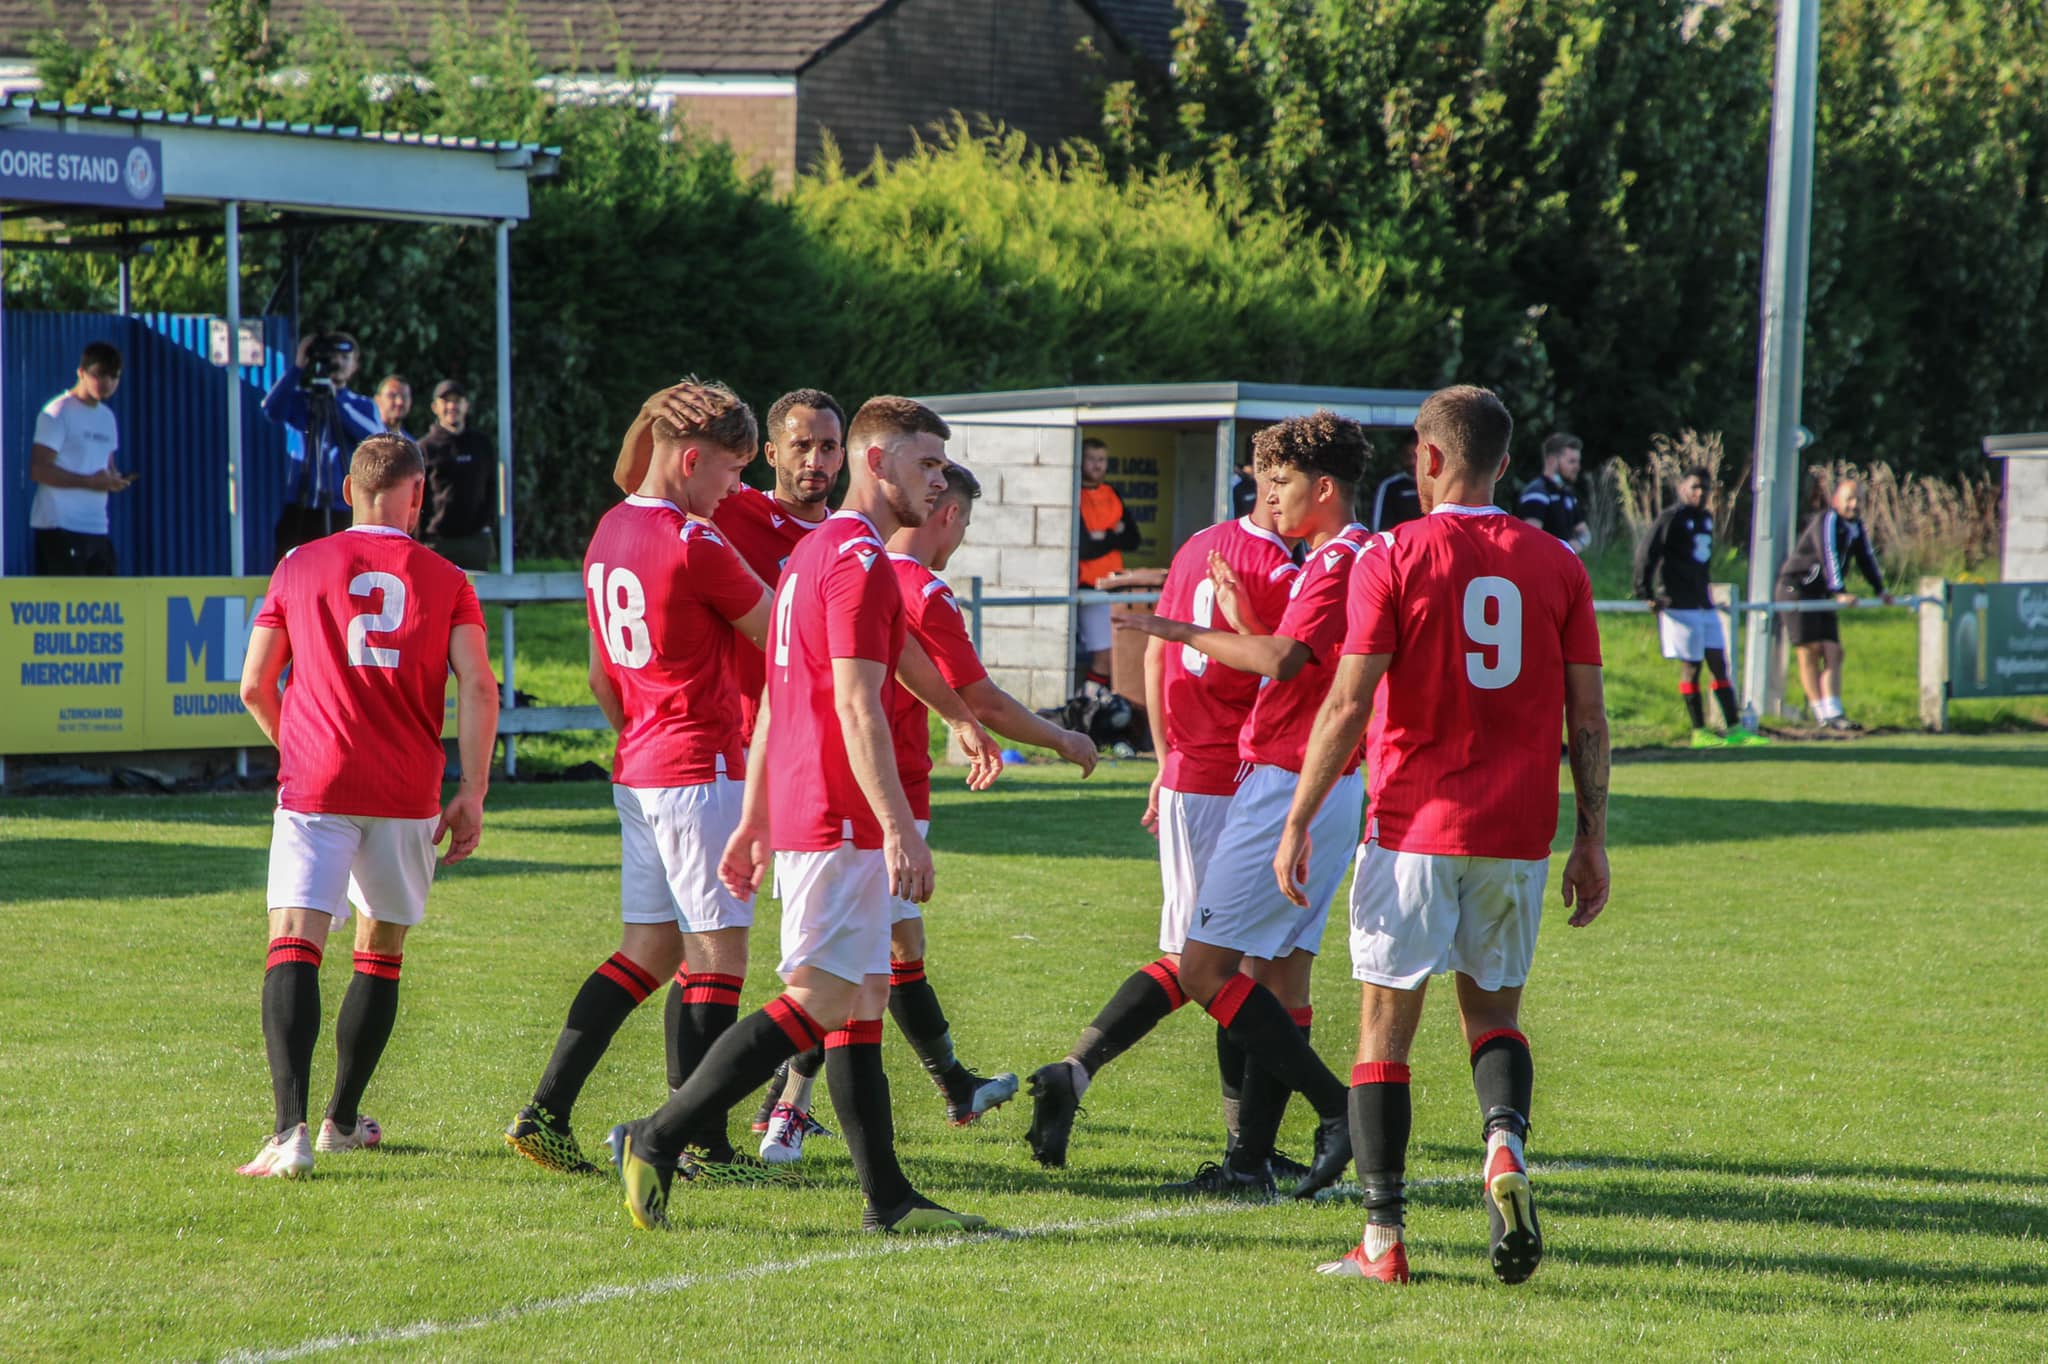 Town take comfortable win